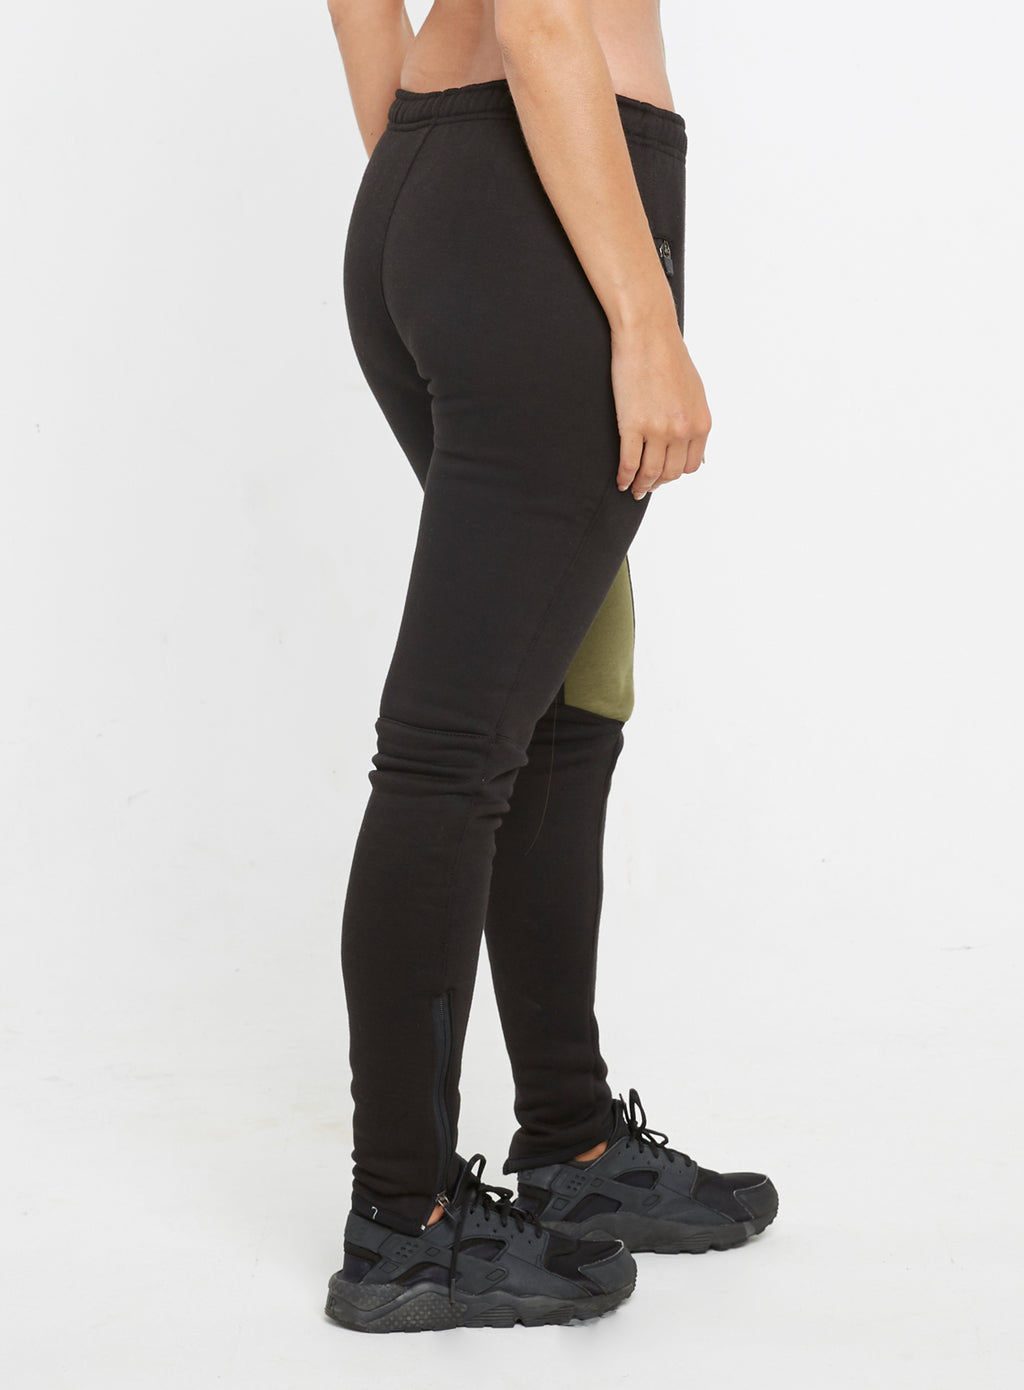 Gym Monkee - Ladies Black and Khaki Joggers RIGHT